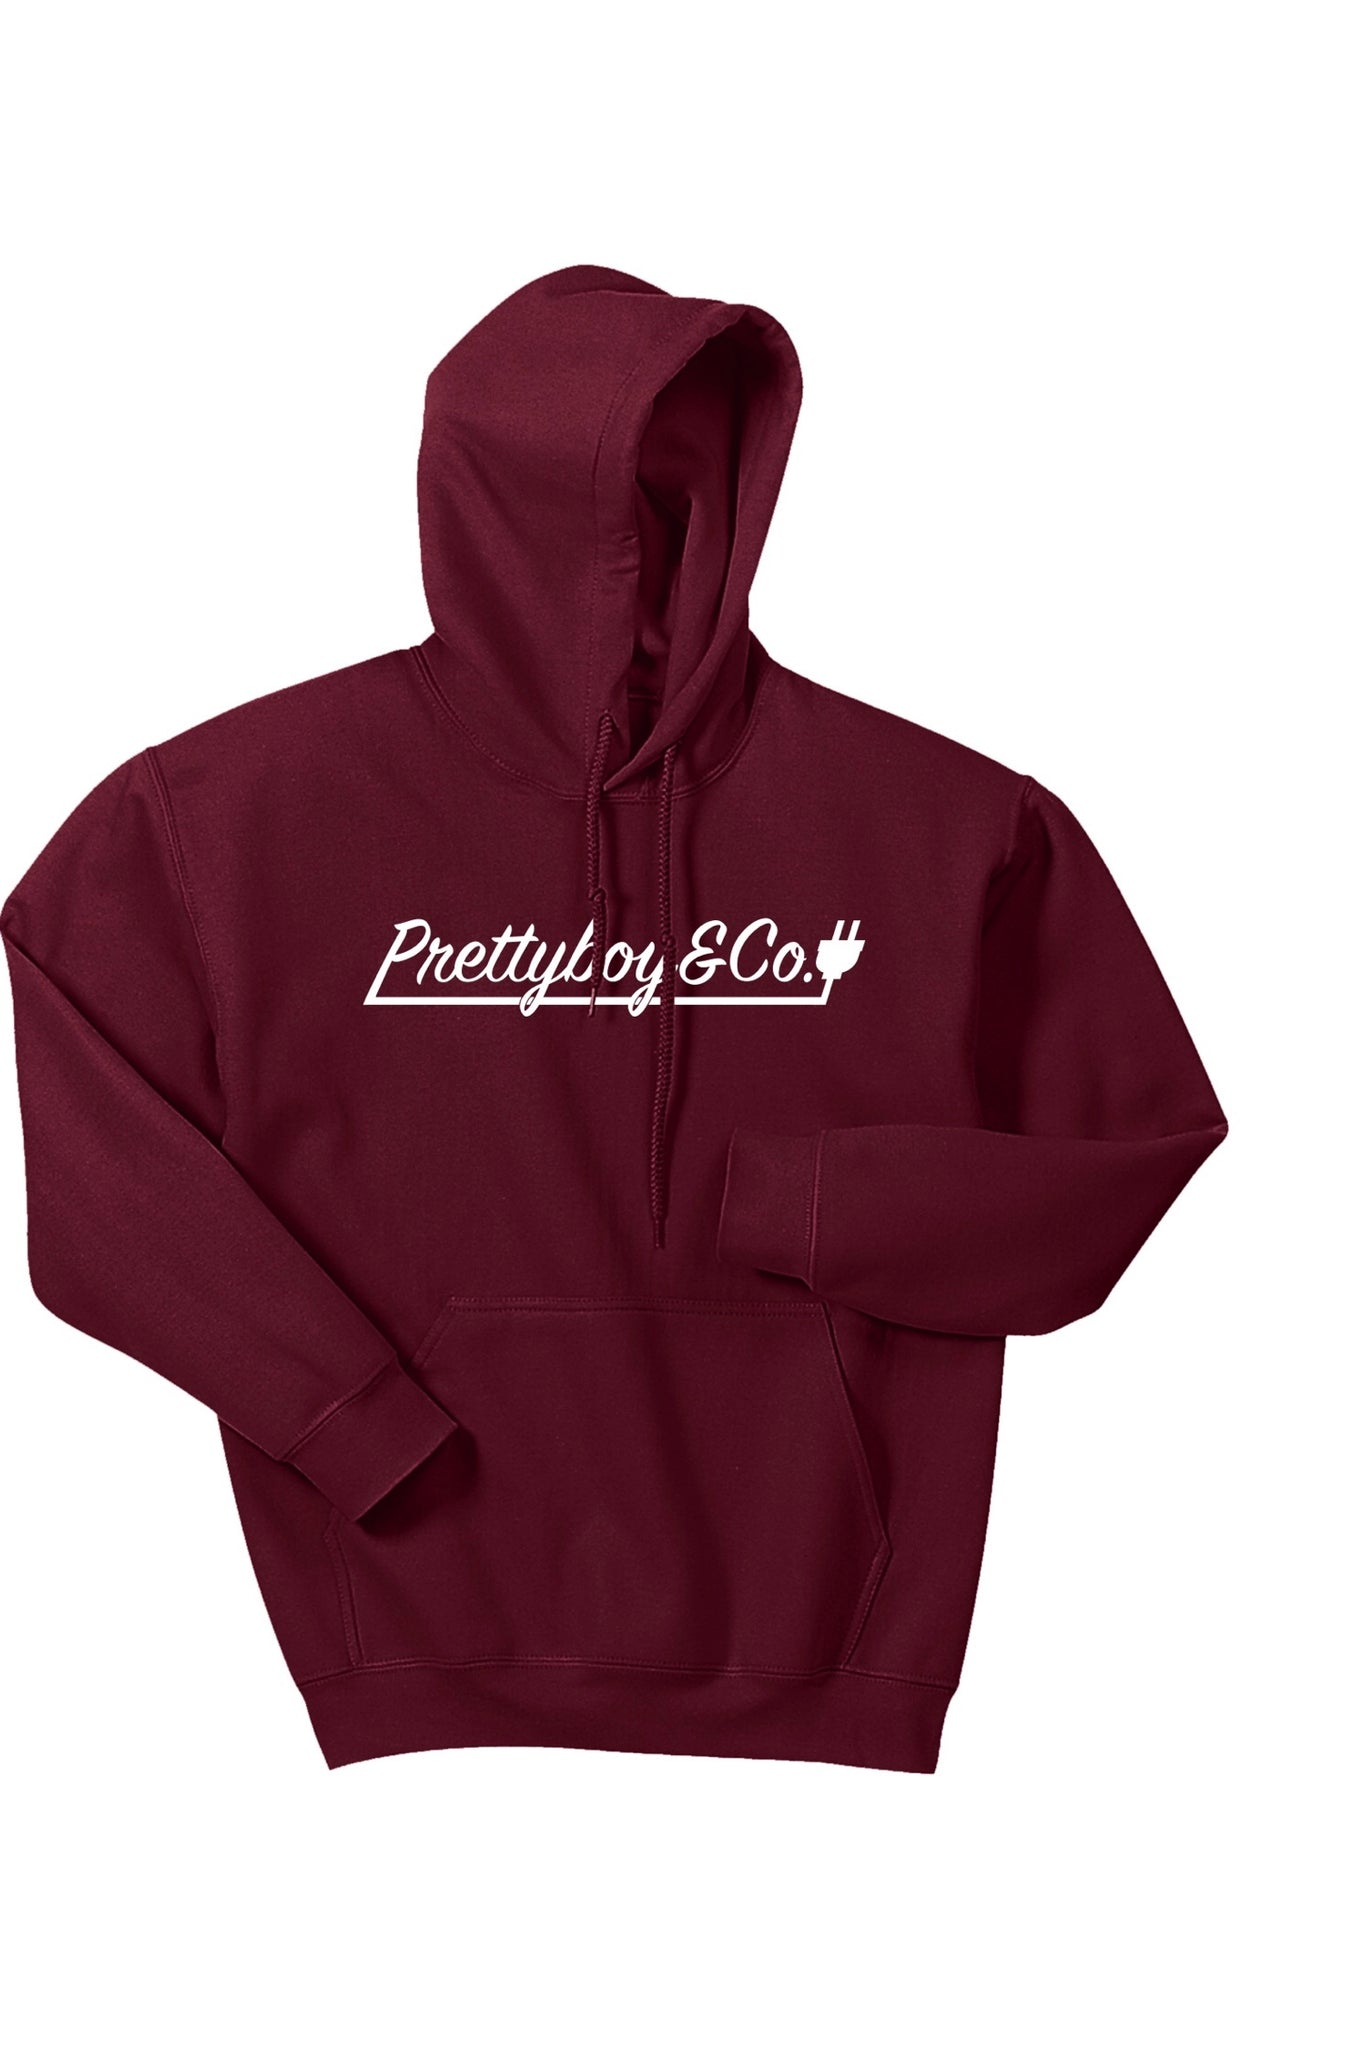 Burgundy Script Hooded Sweatshirt (Limited)